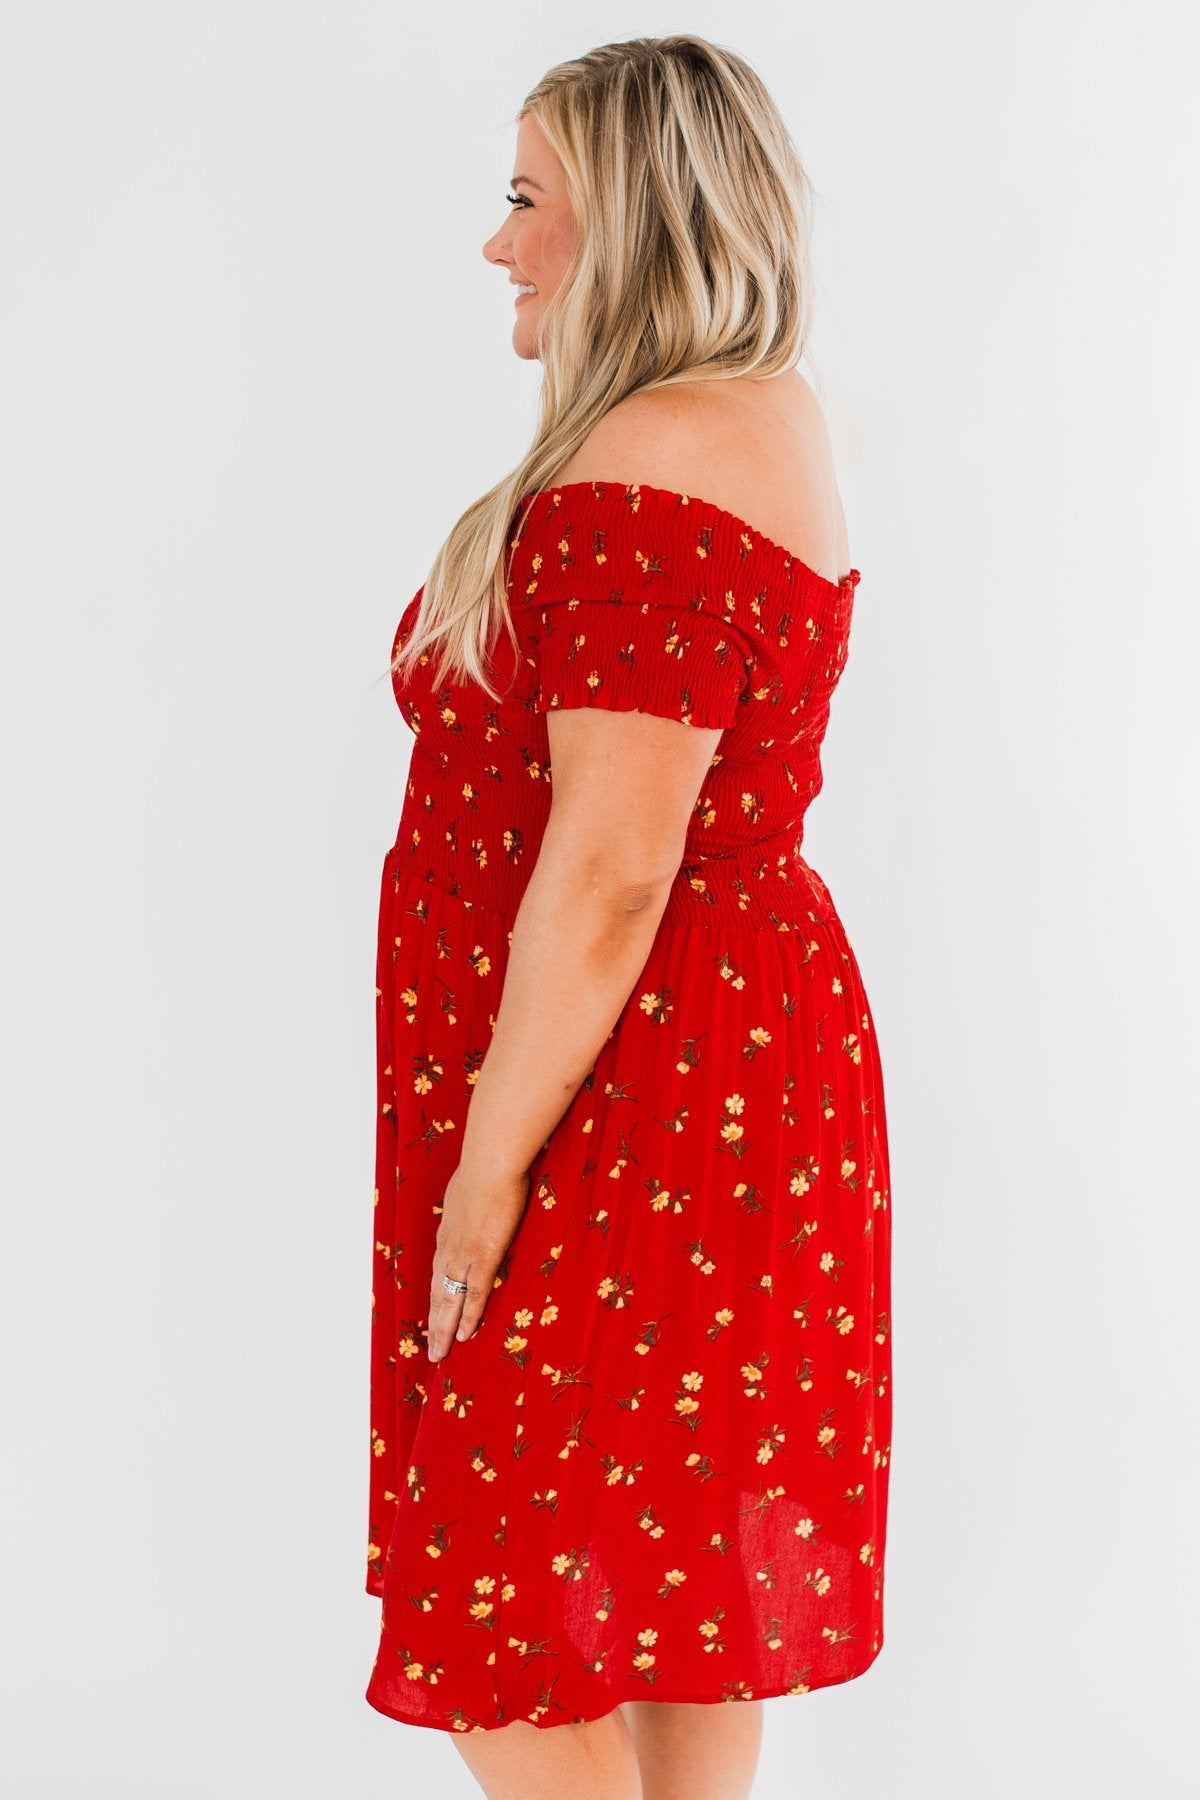 Dancing Through The Flowers Cinched Dress- Red